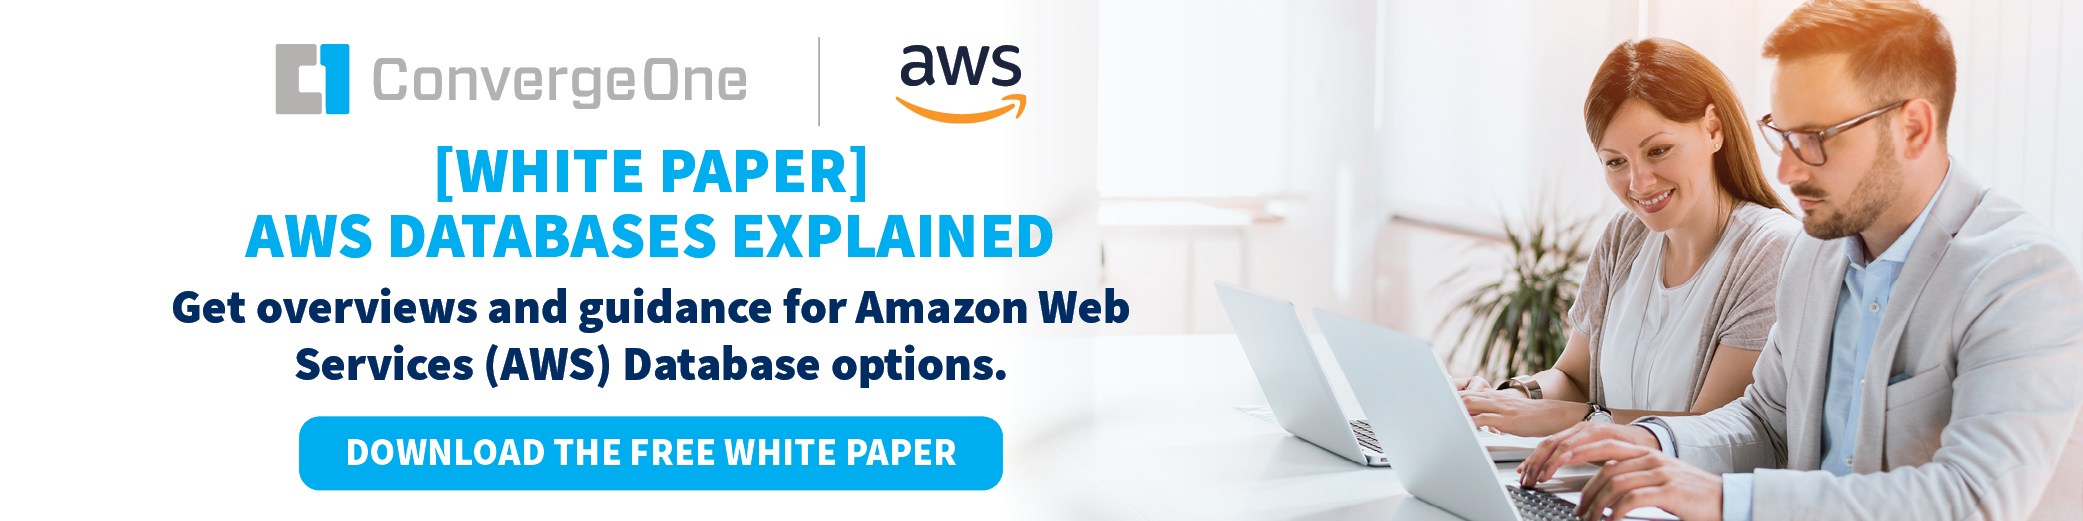 AWS Databases White Paper - Download Now